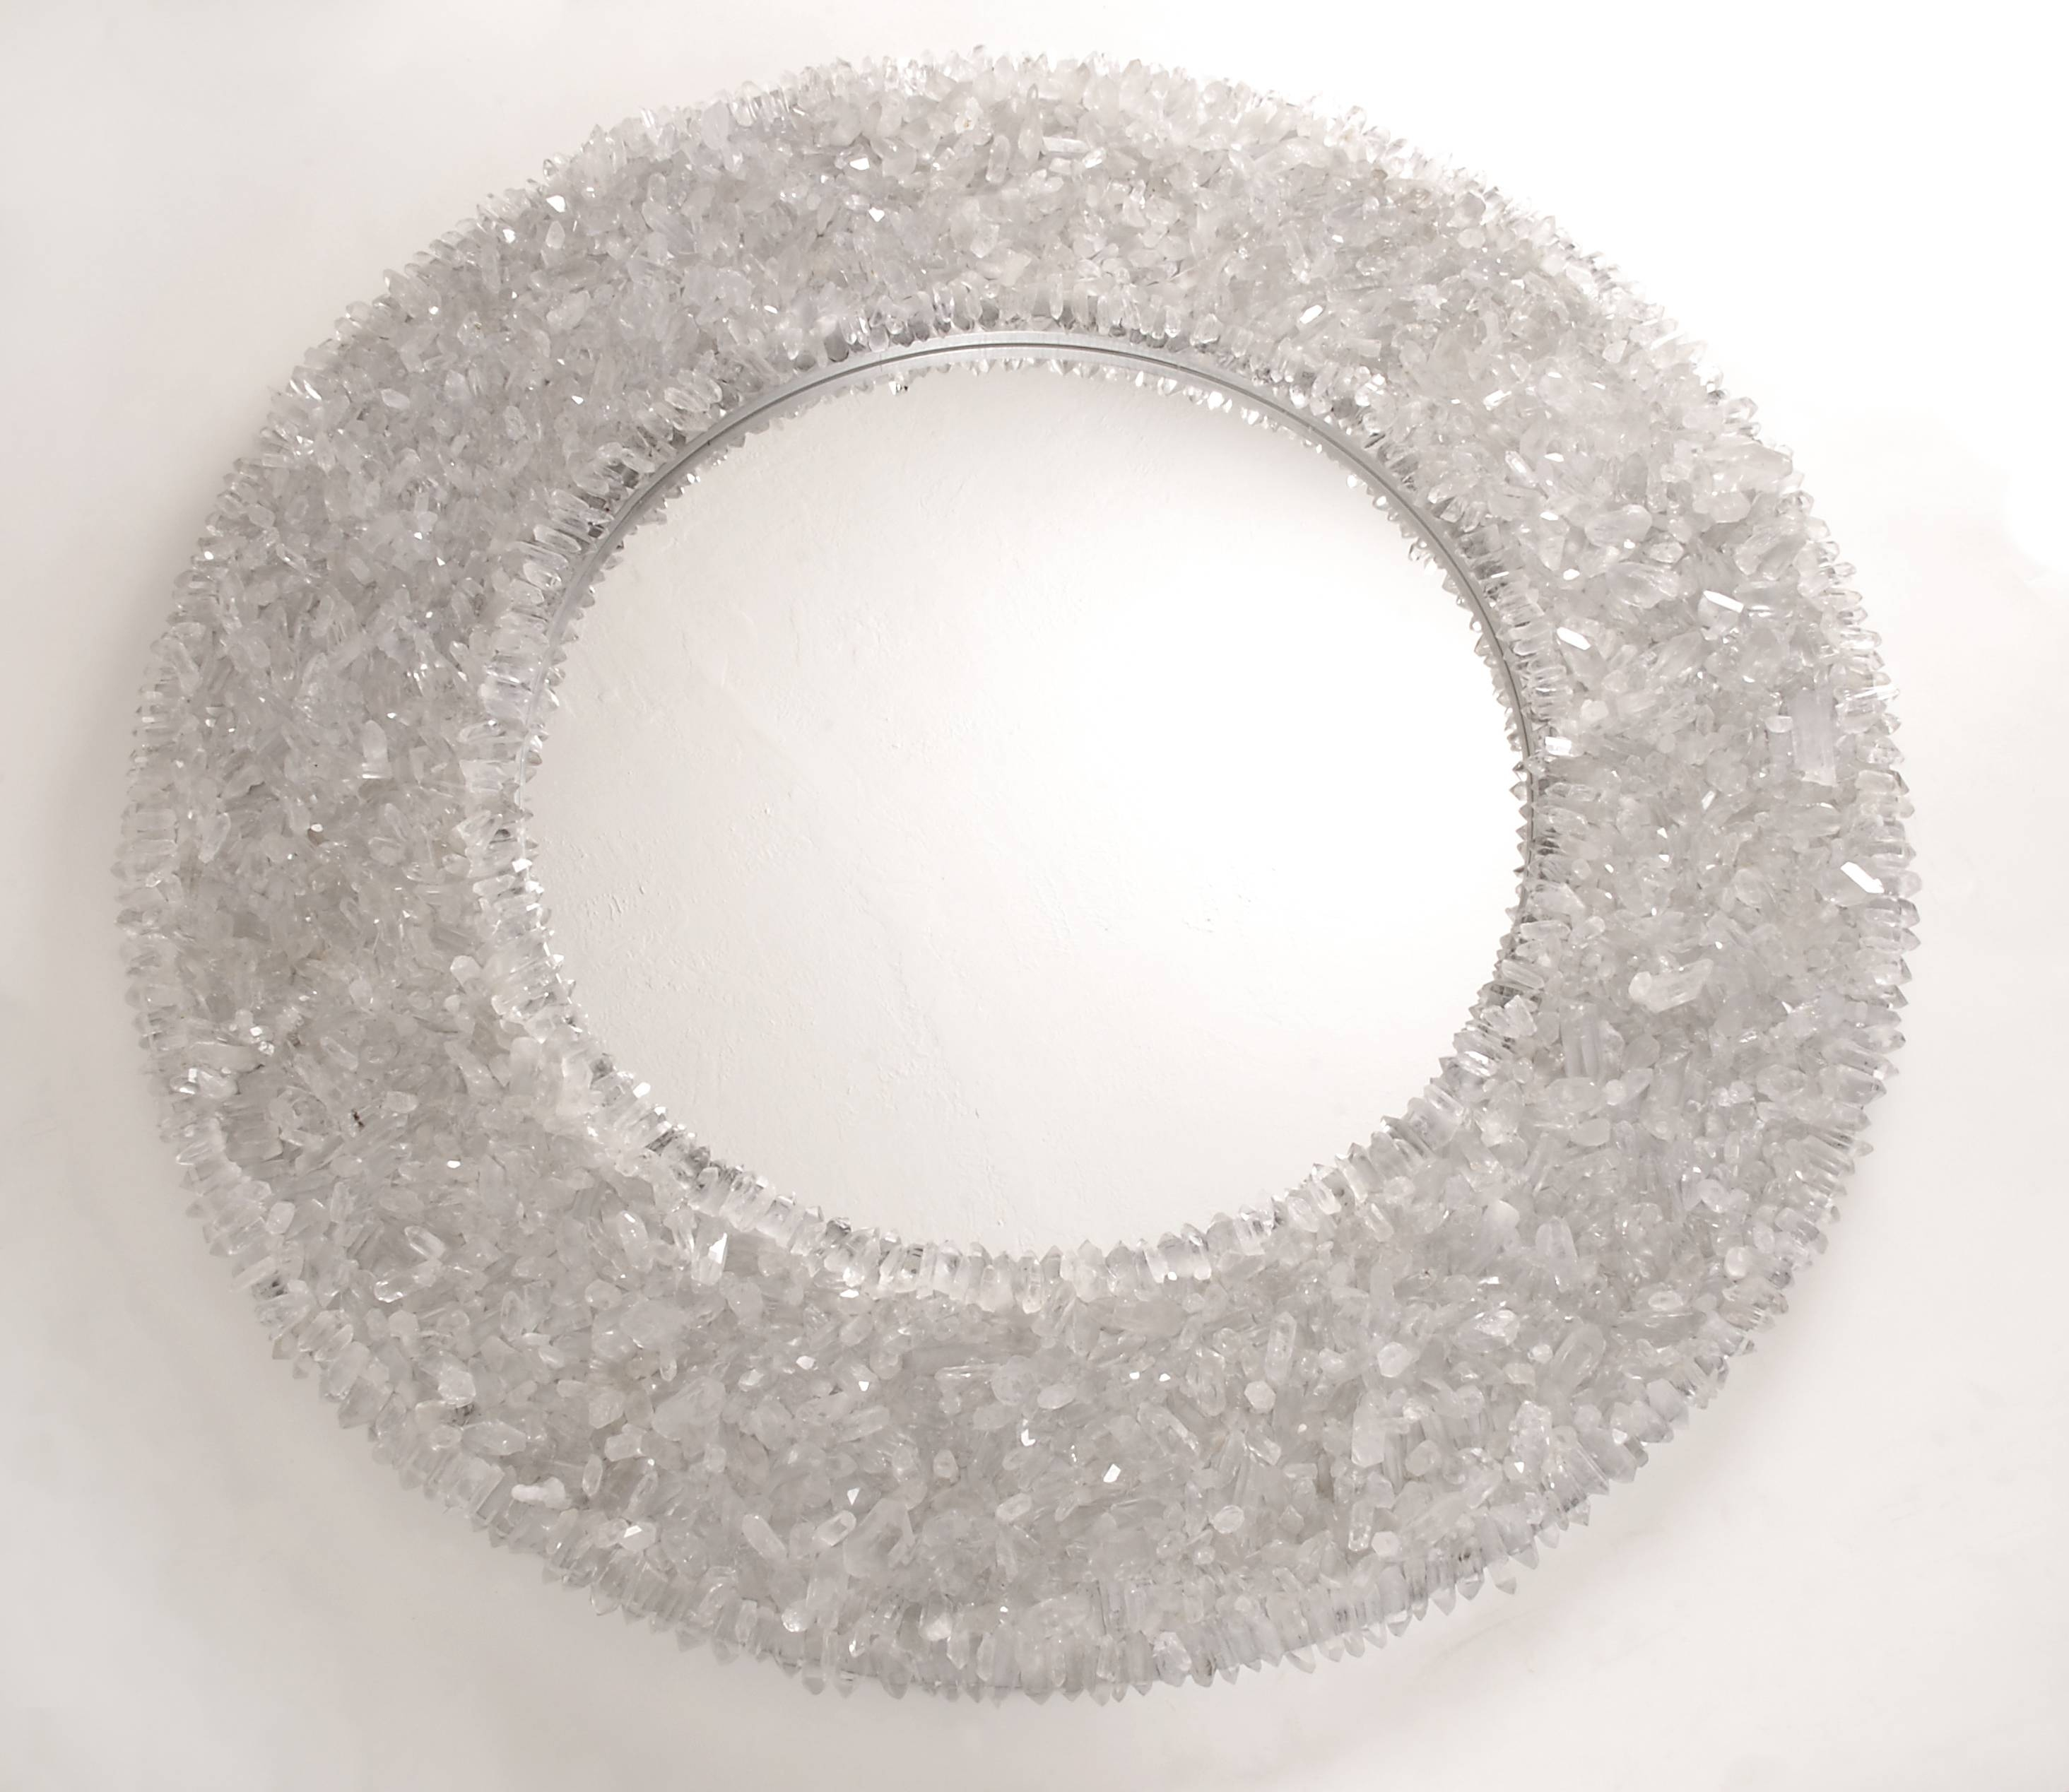 Marjorie Skouras : Dennis Miller Associates Fine Contemporary inside Mirrors With Crystals (Image 11 of 15)